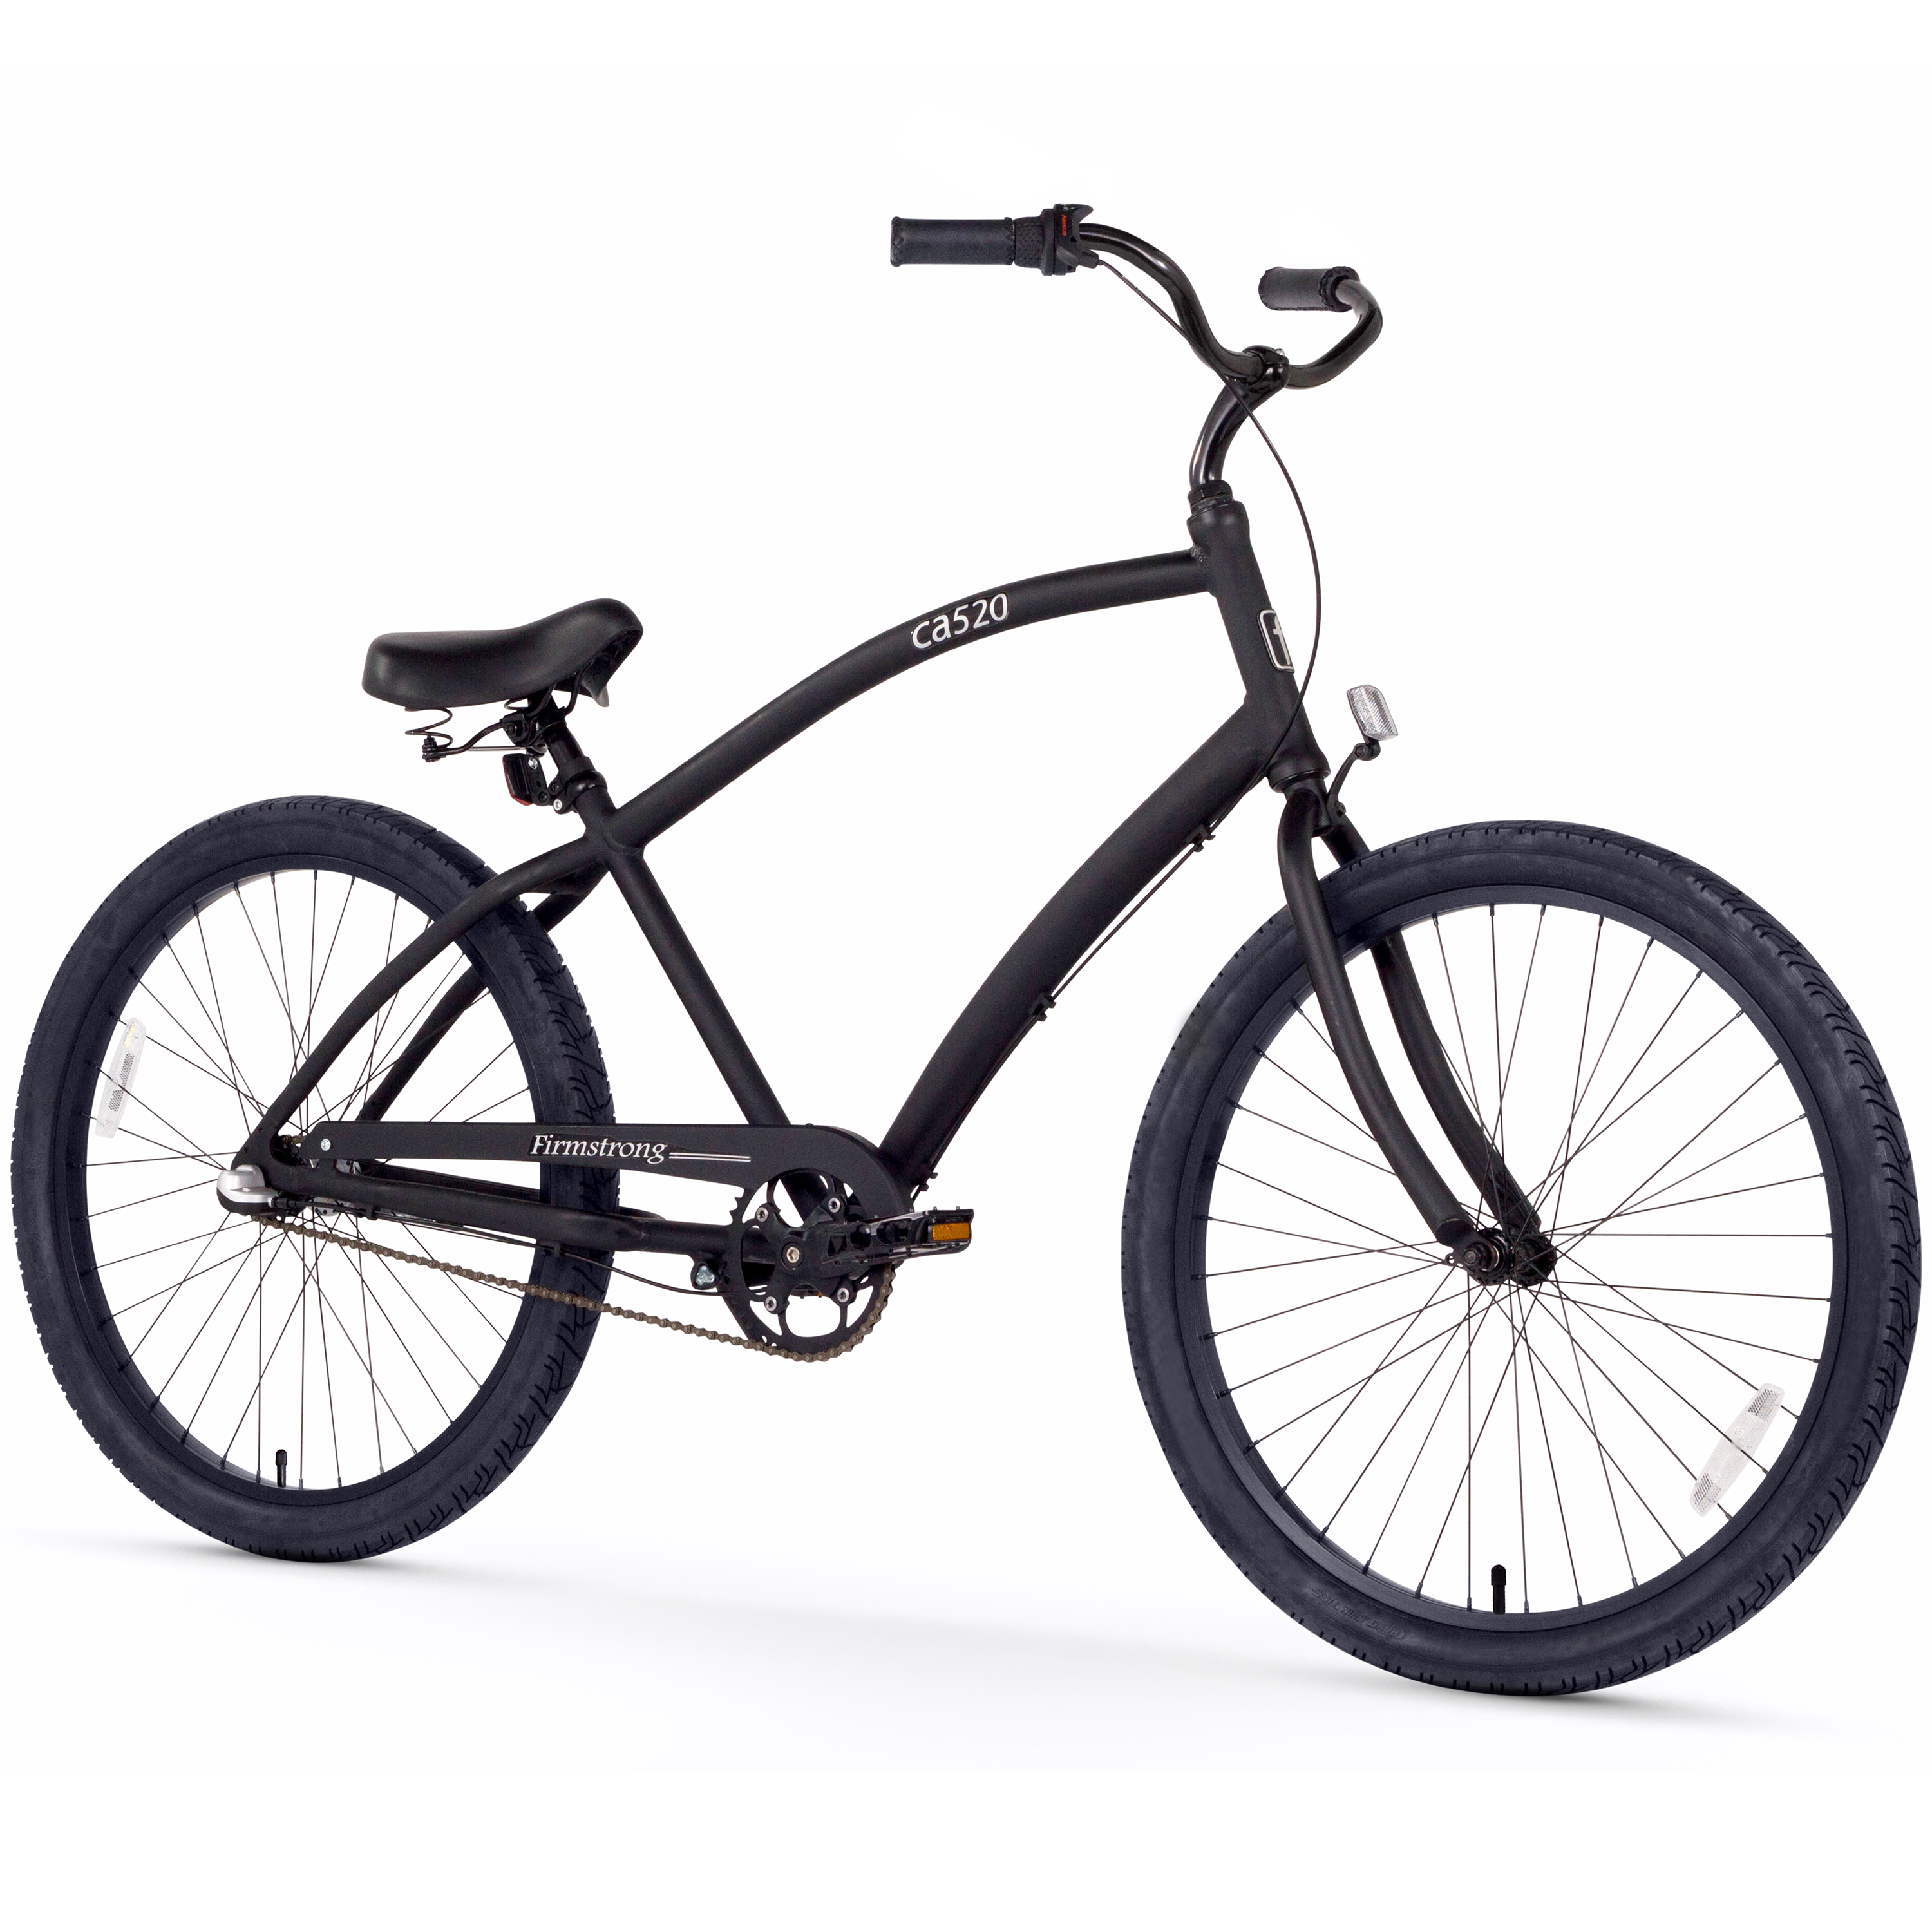 "Firmstrong 26"" Men's CA-520 Alloy Beach Cruiser Bicycle, 3 and 7 Speed"